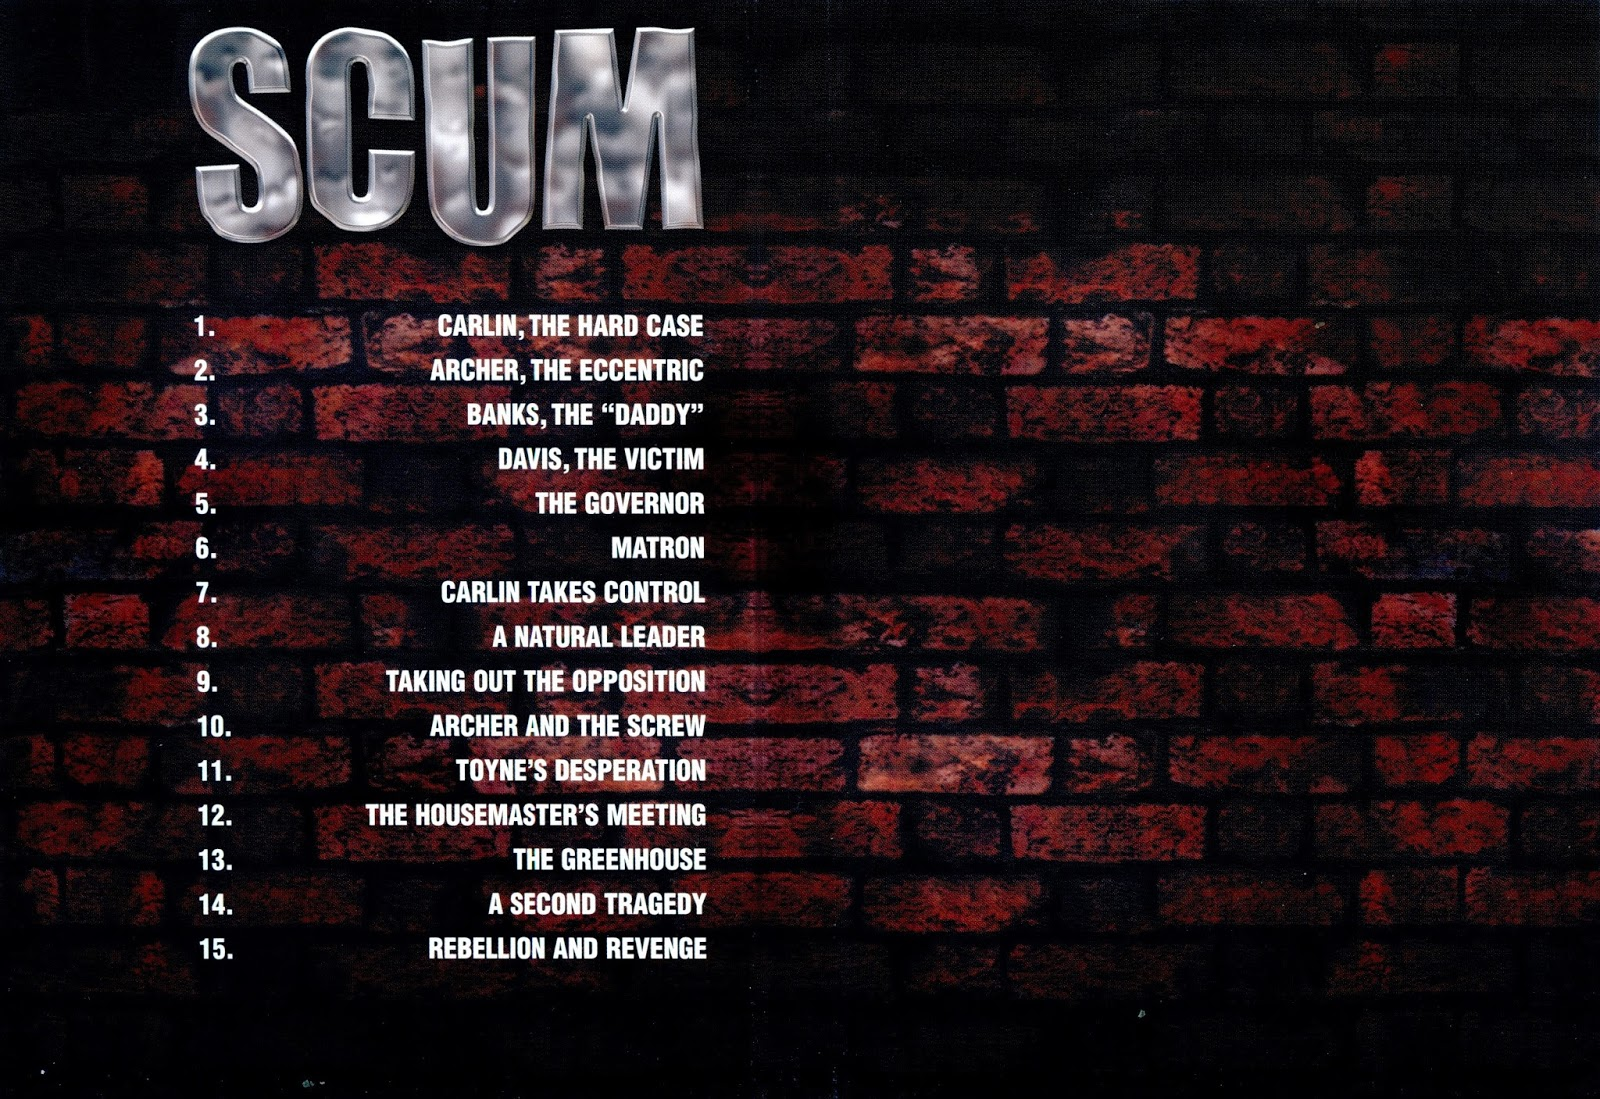 Dvd and vhs covers scum dvd cover uncut version for Inside unrated